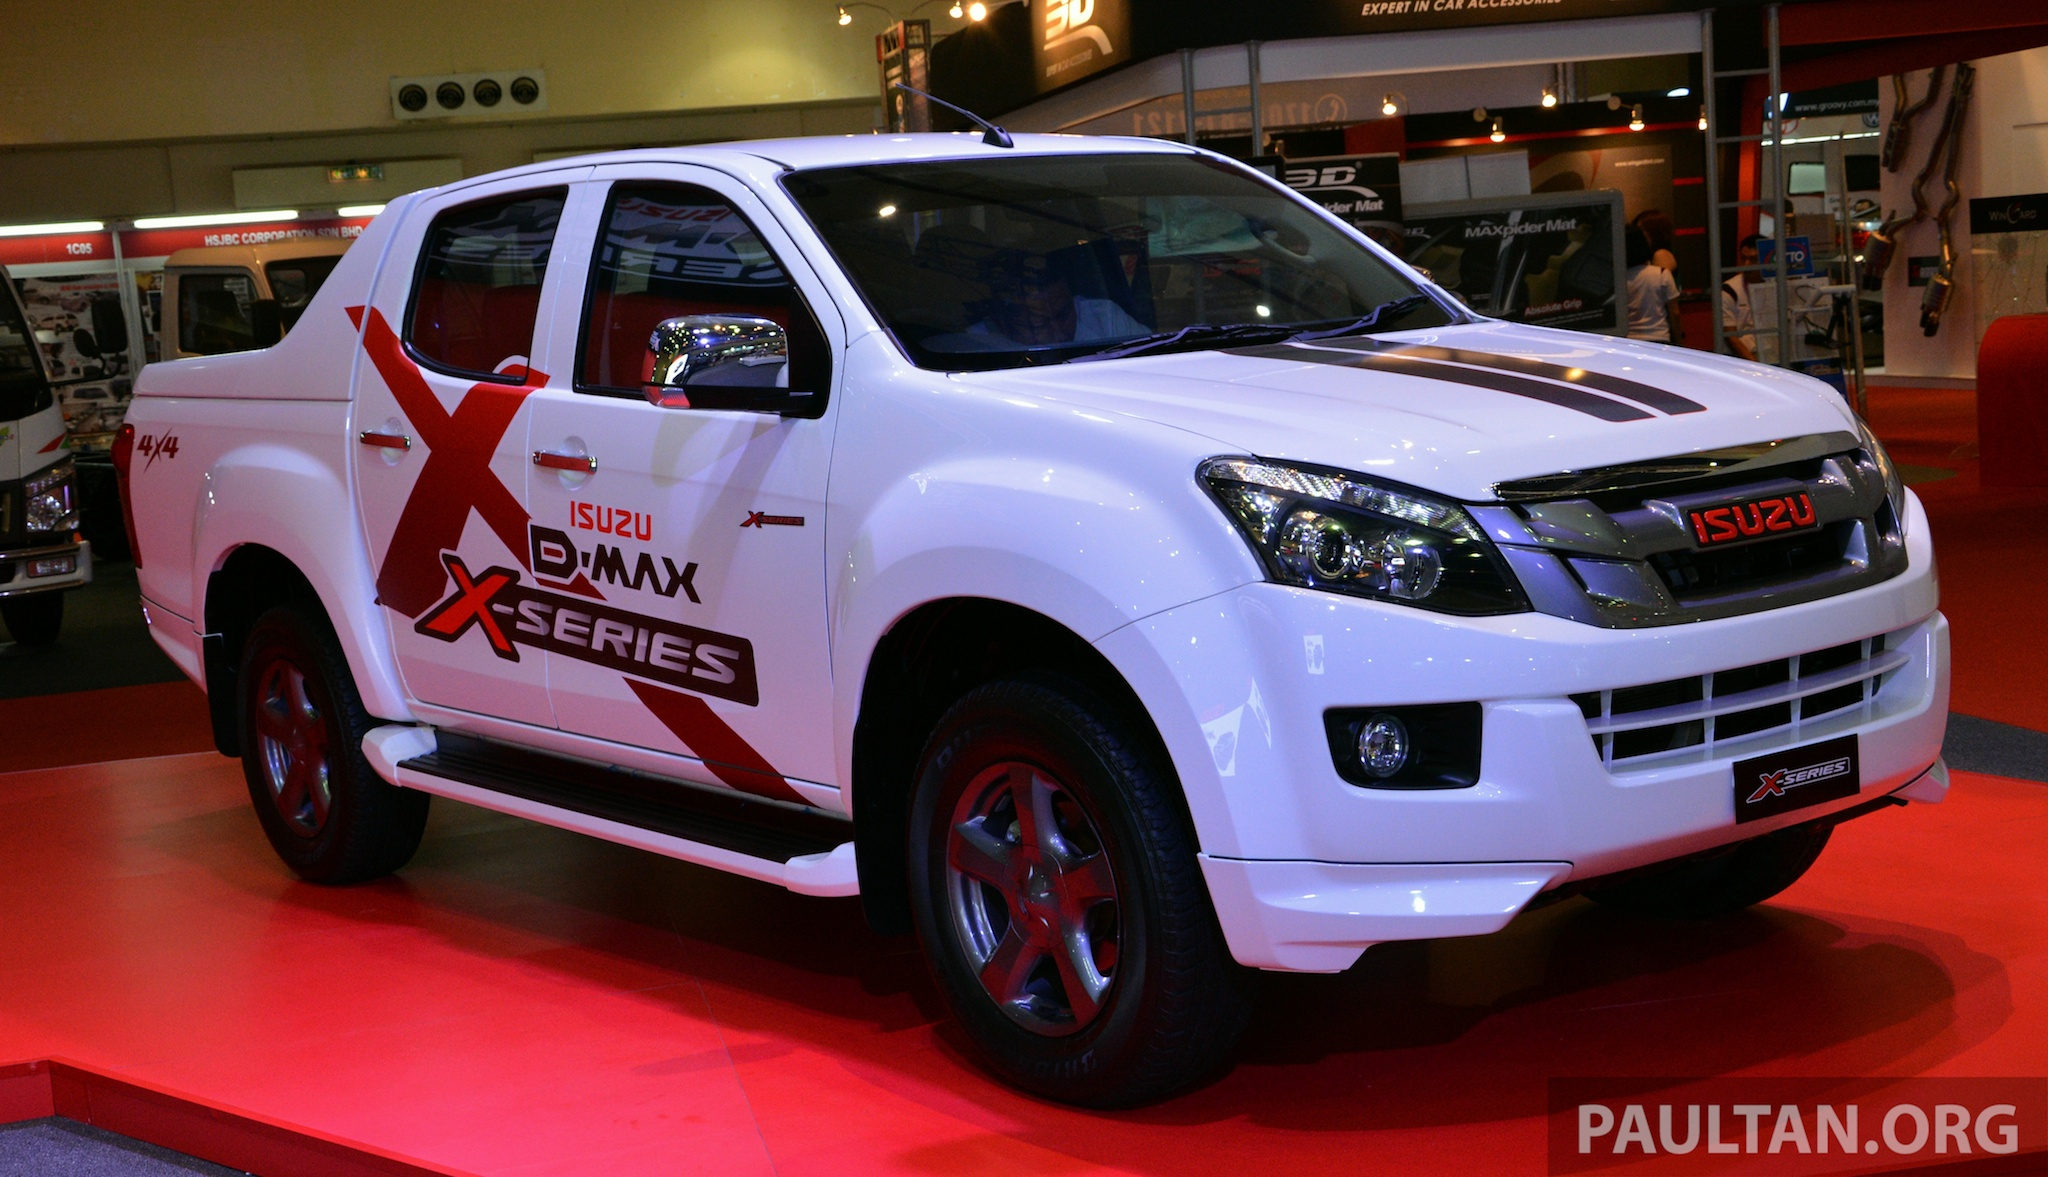 Back to Story: 2013 Isuzu D-Max X-Series launched – only 300 units